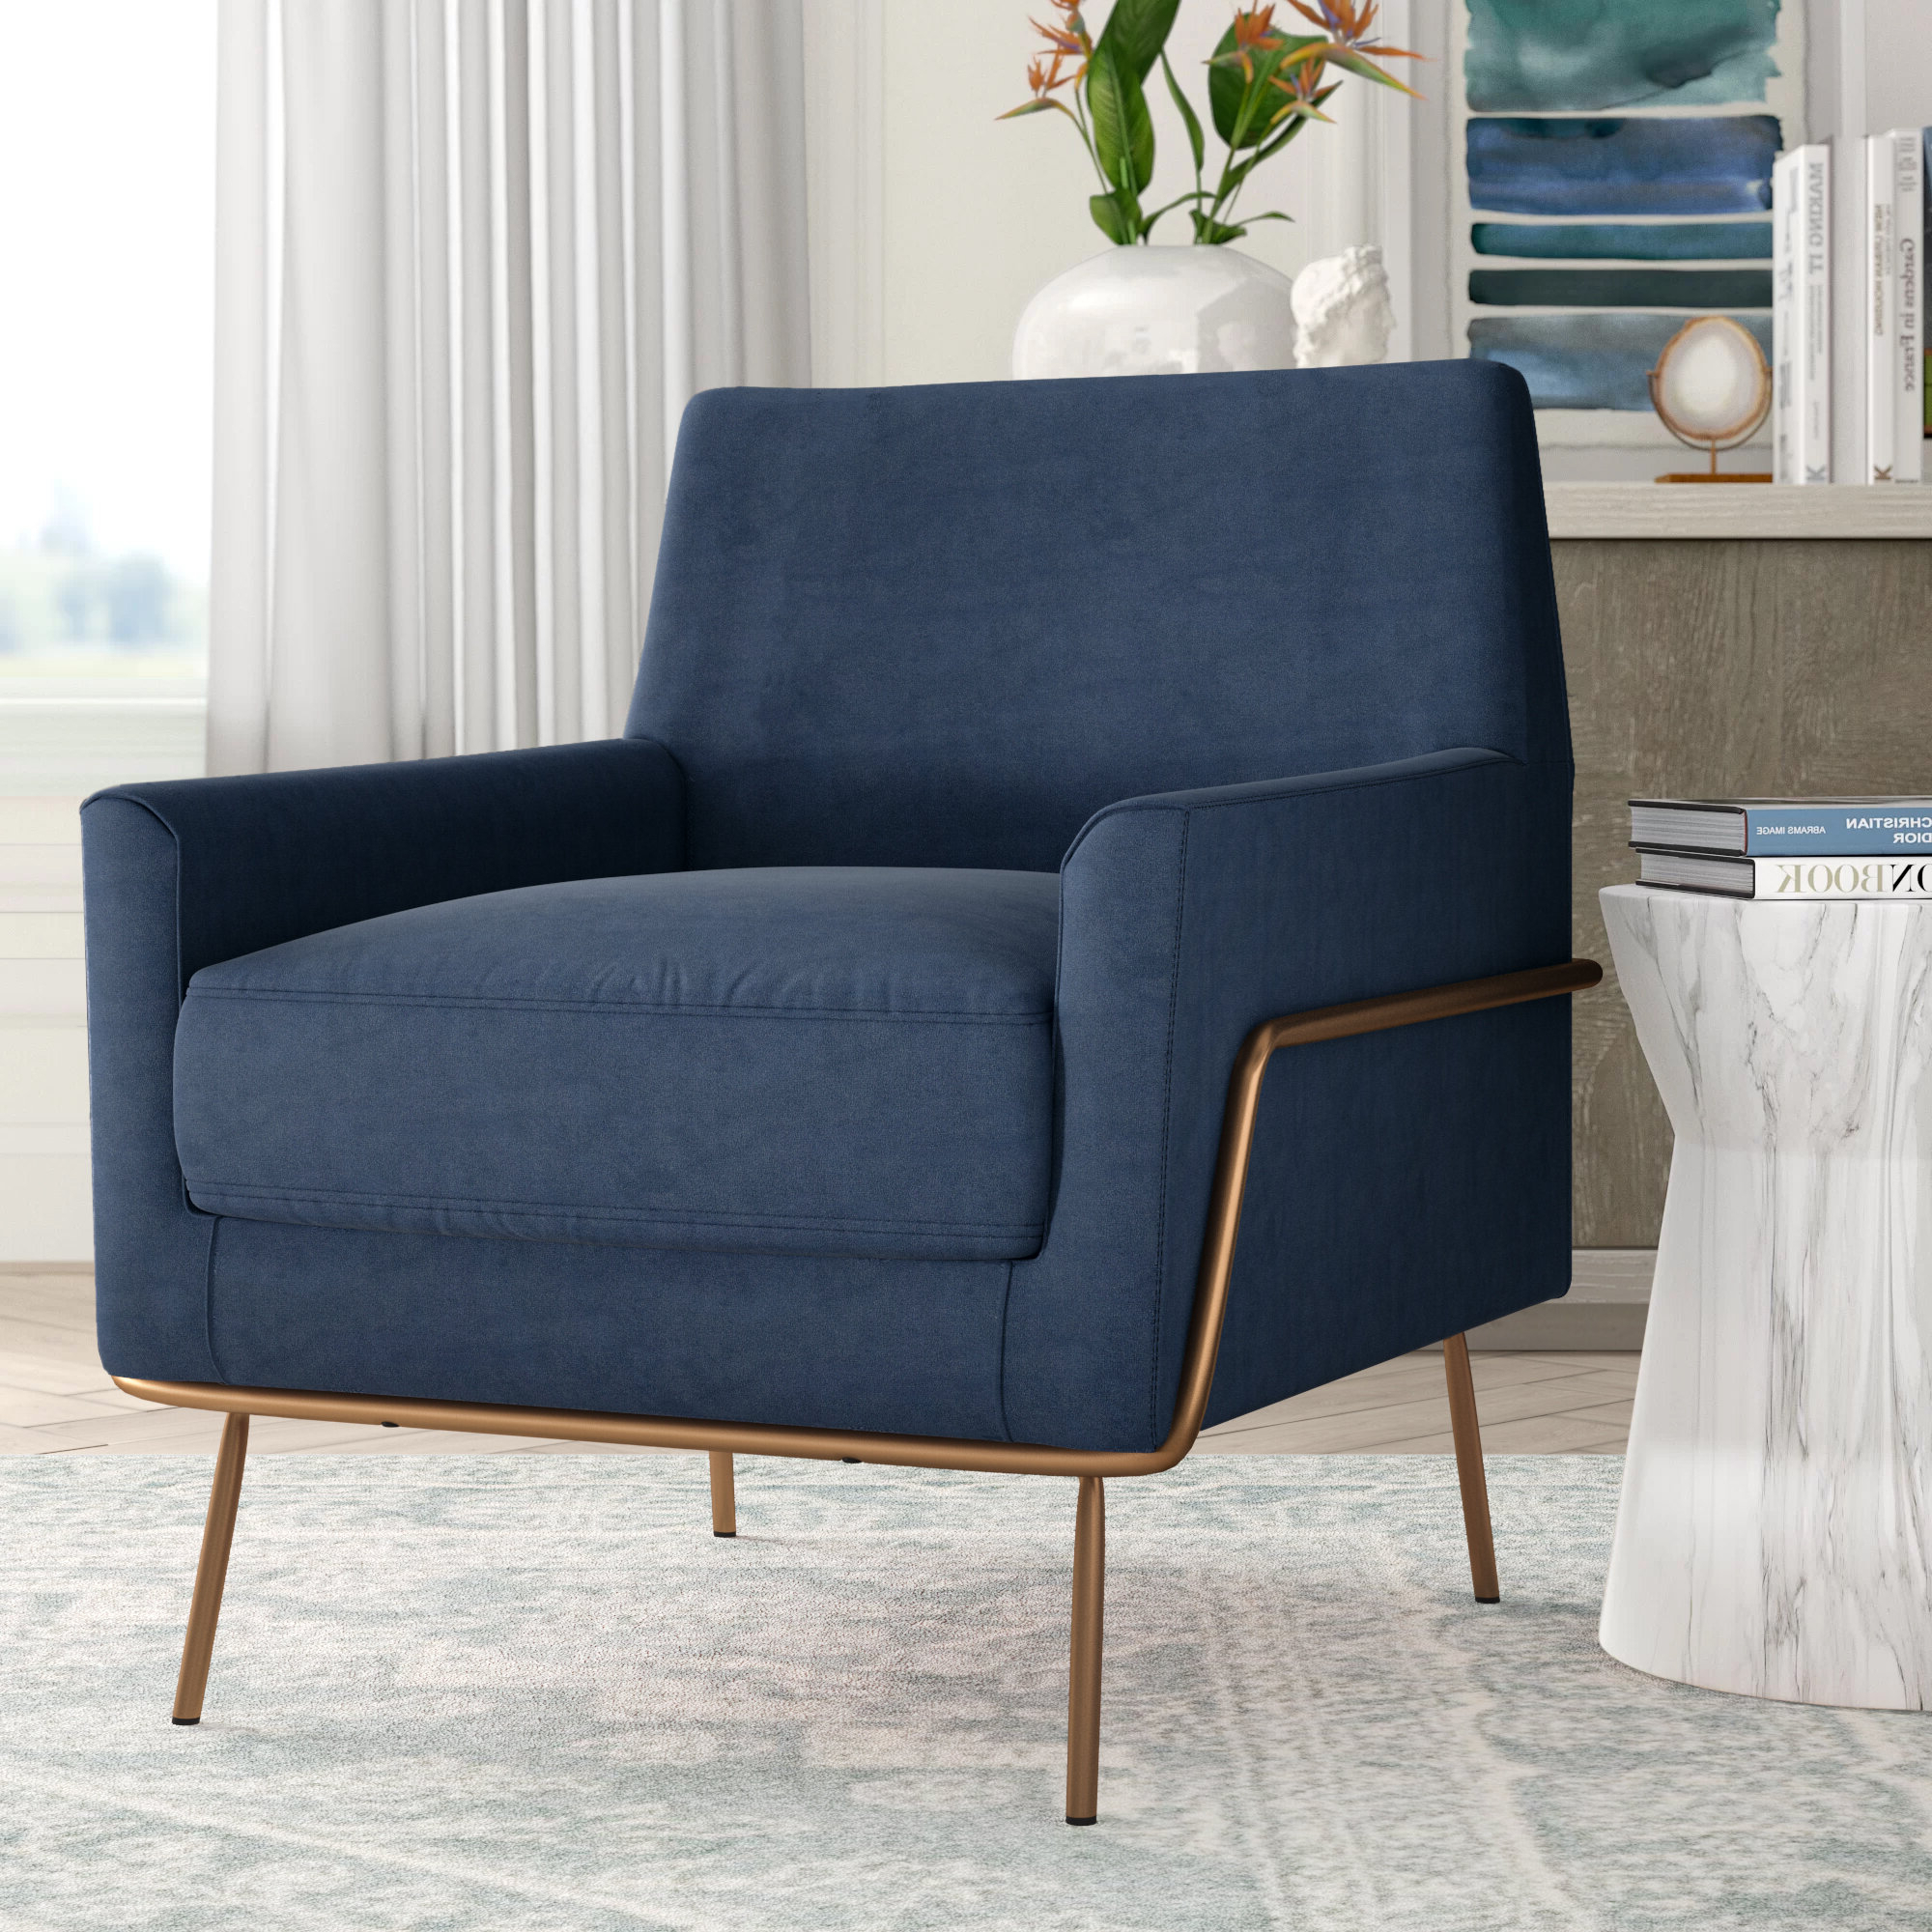 Widely Used Newton Armchair & Reviews (View 14 of 20)